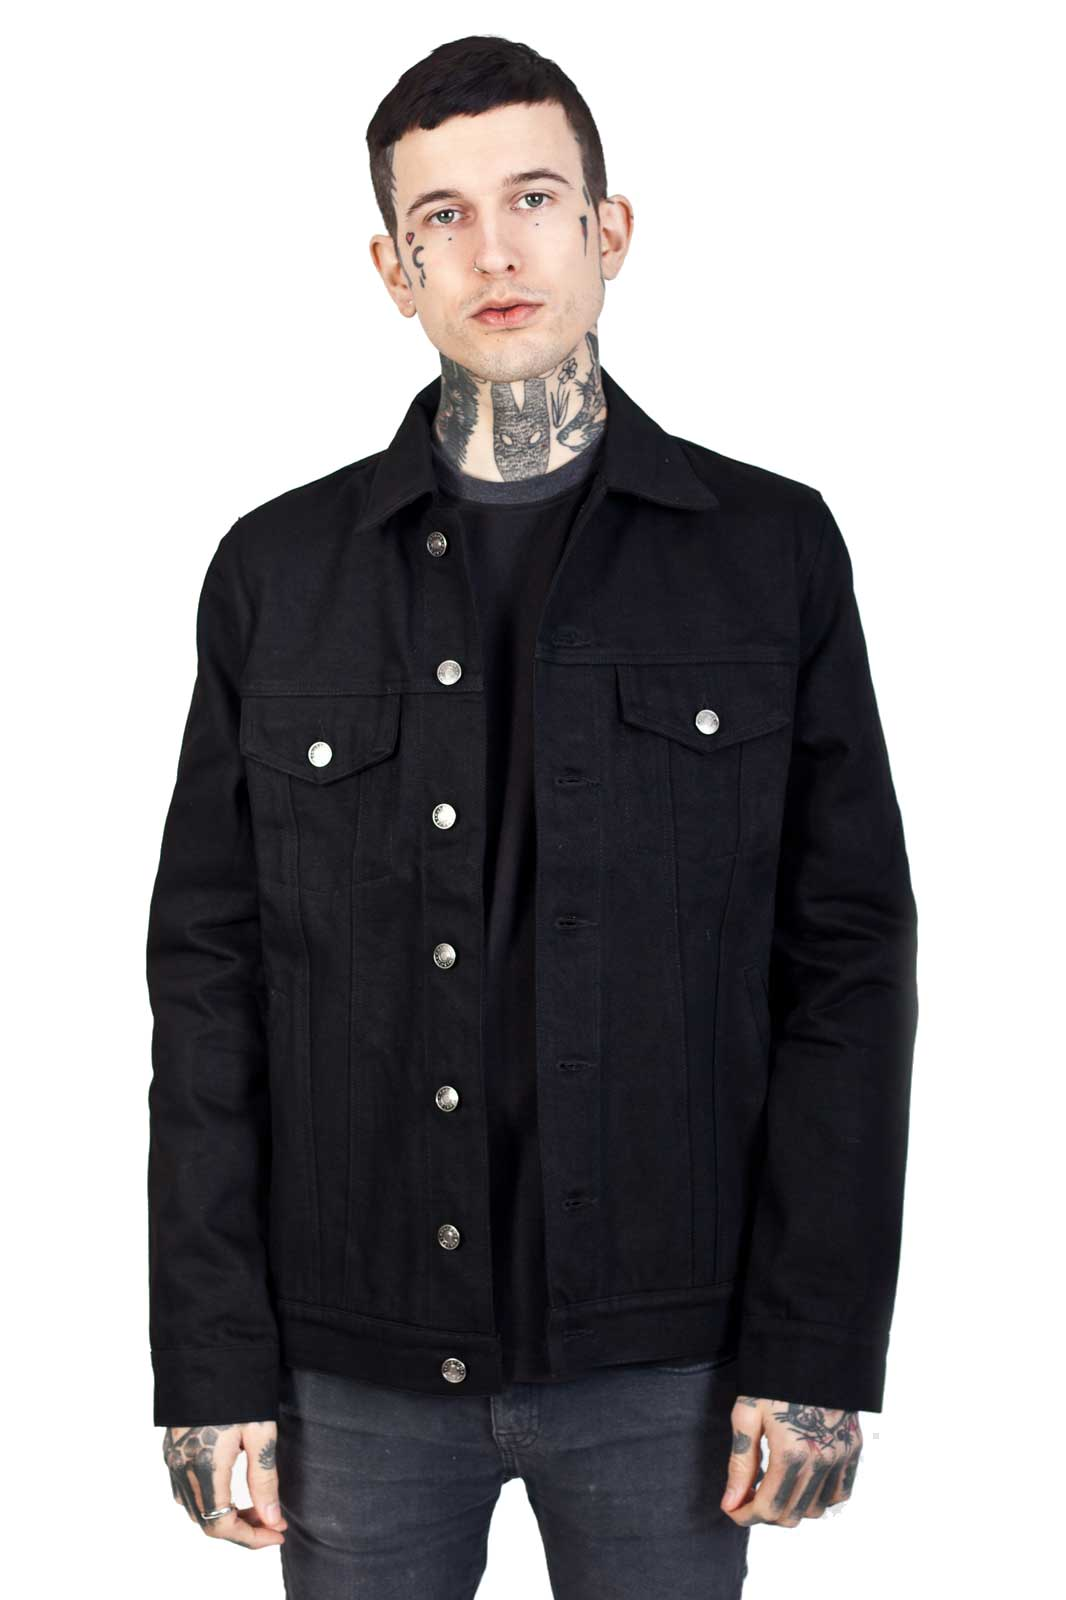 Kustom Creeps Denim Jacket Black Front